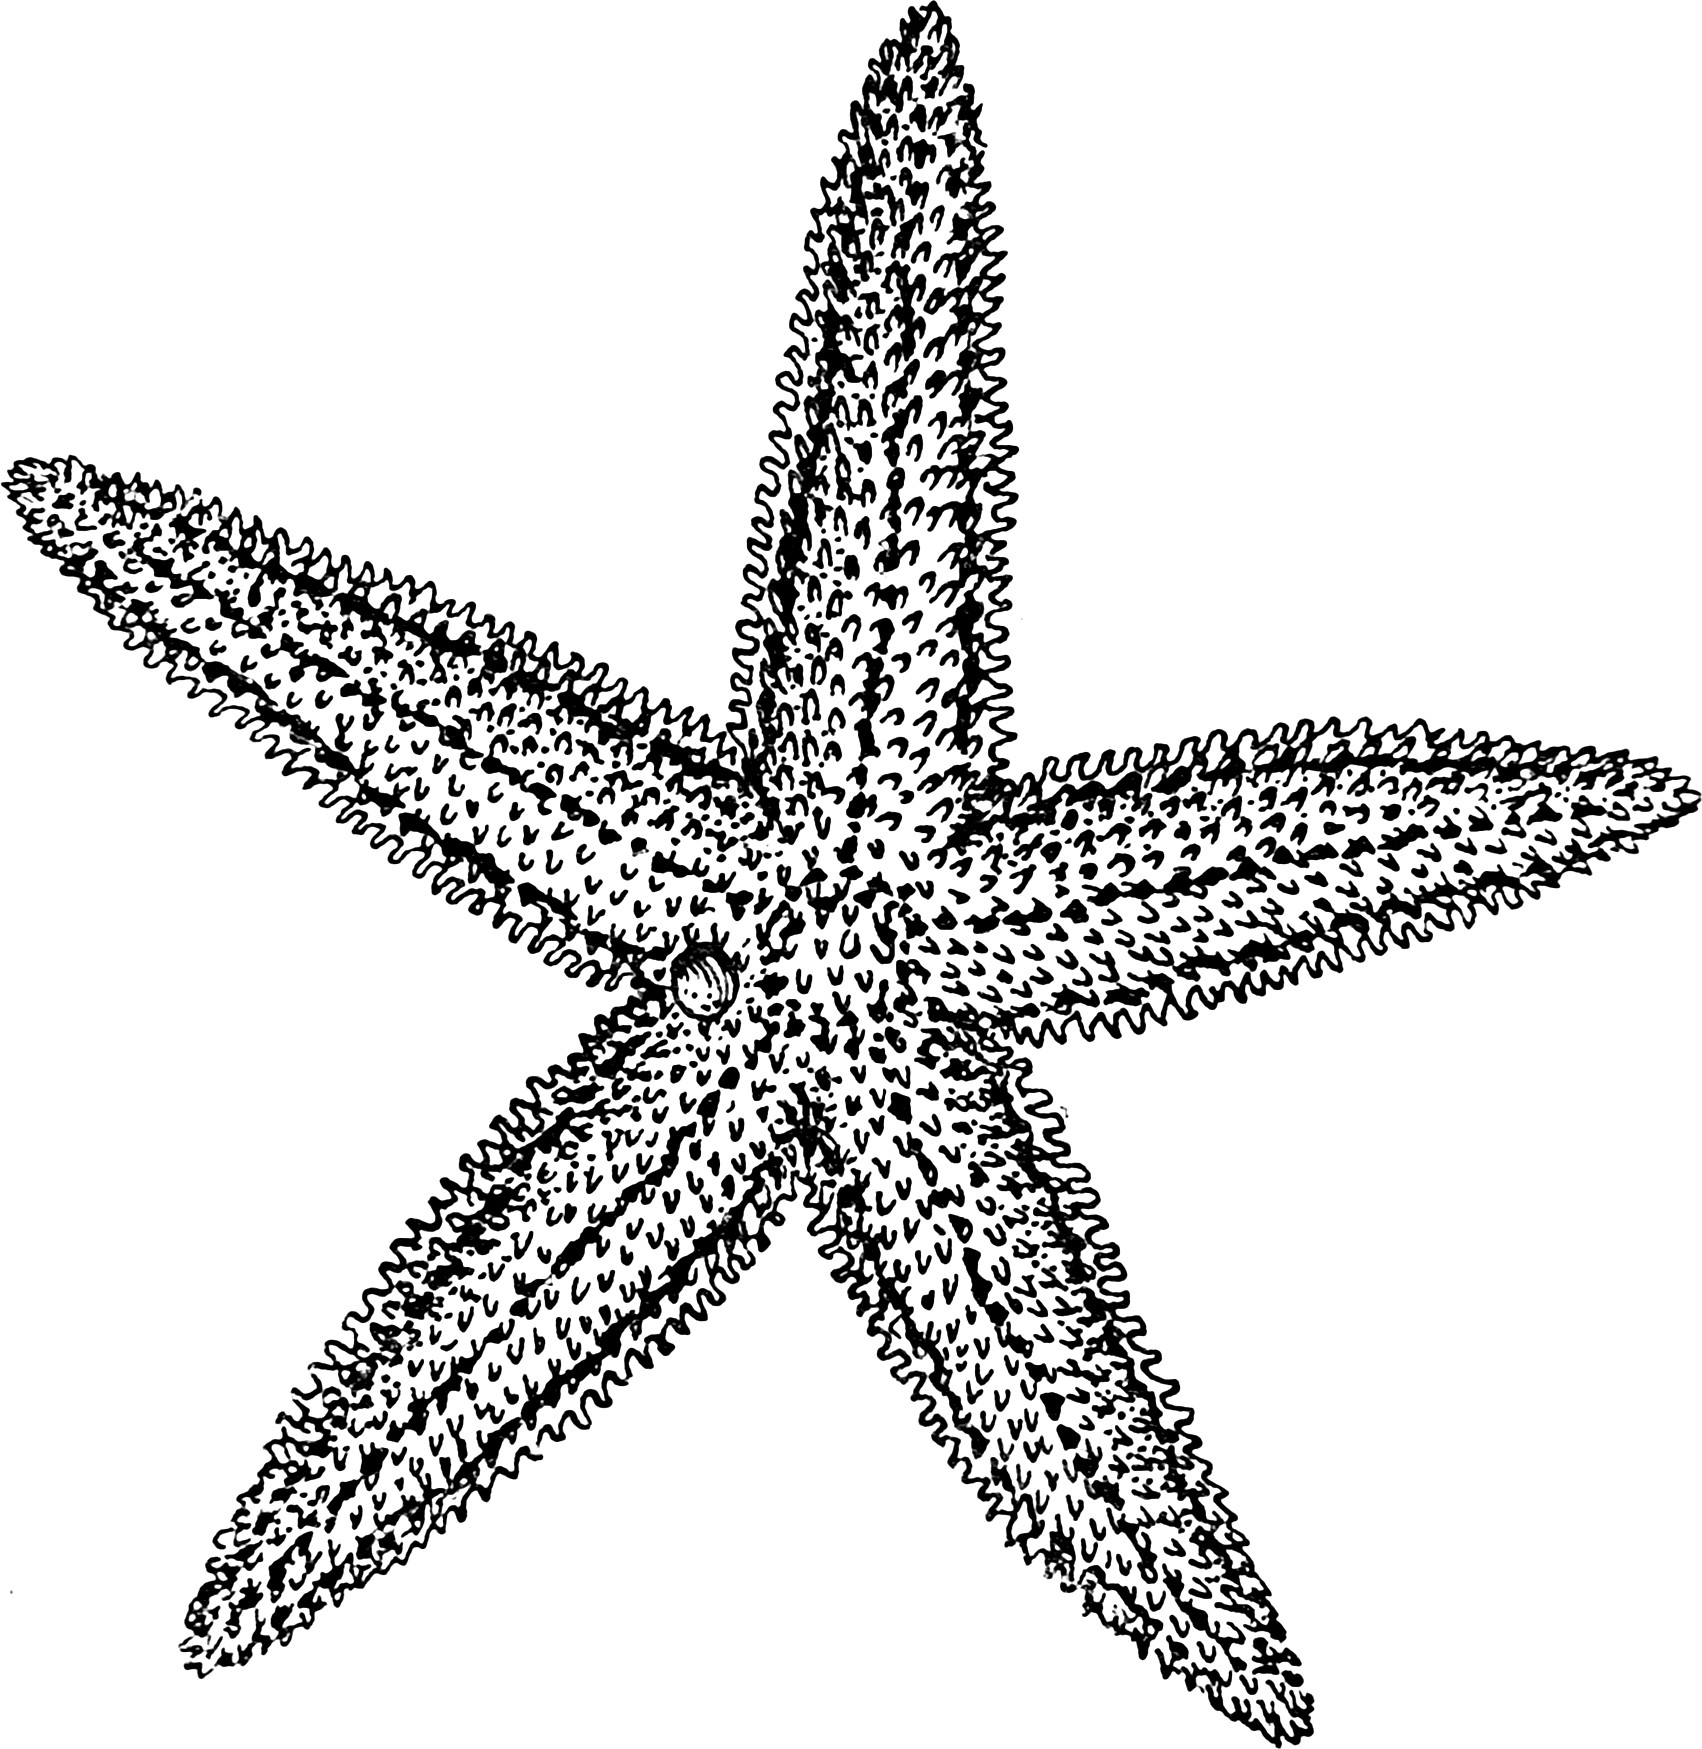 Starfish Line Drawing at GetDrawings.com | Free for personal use ...